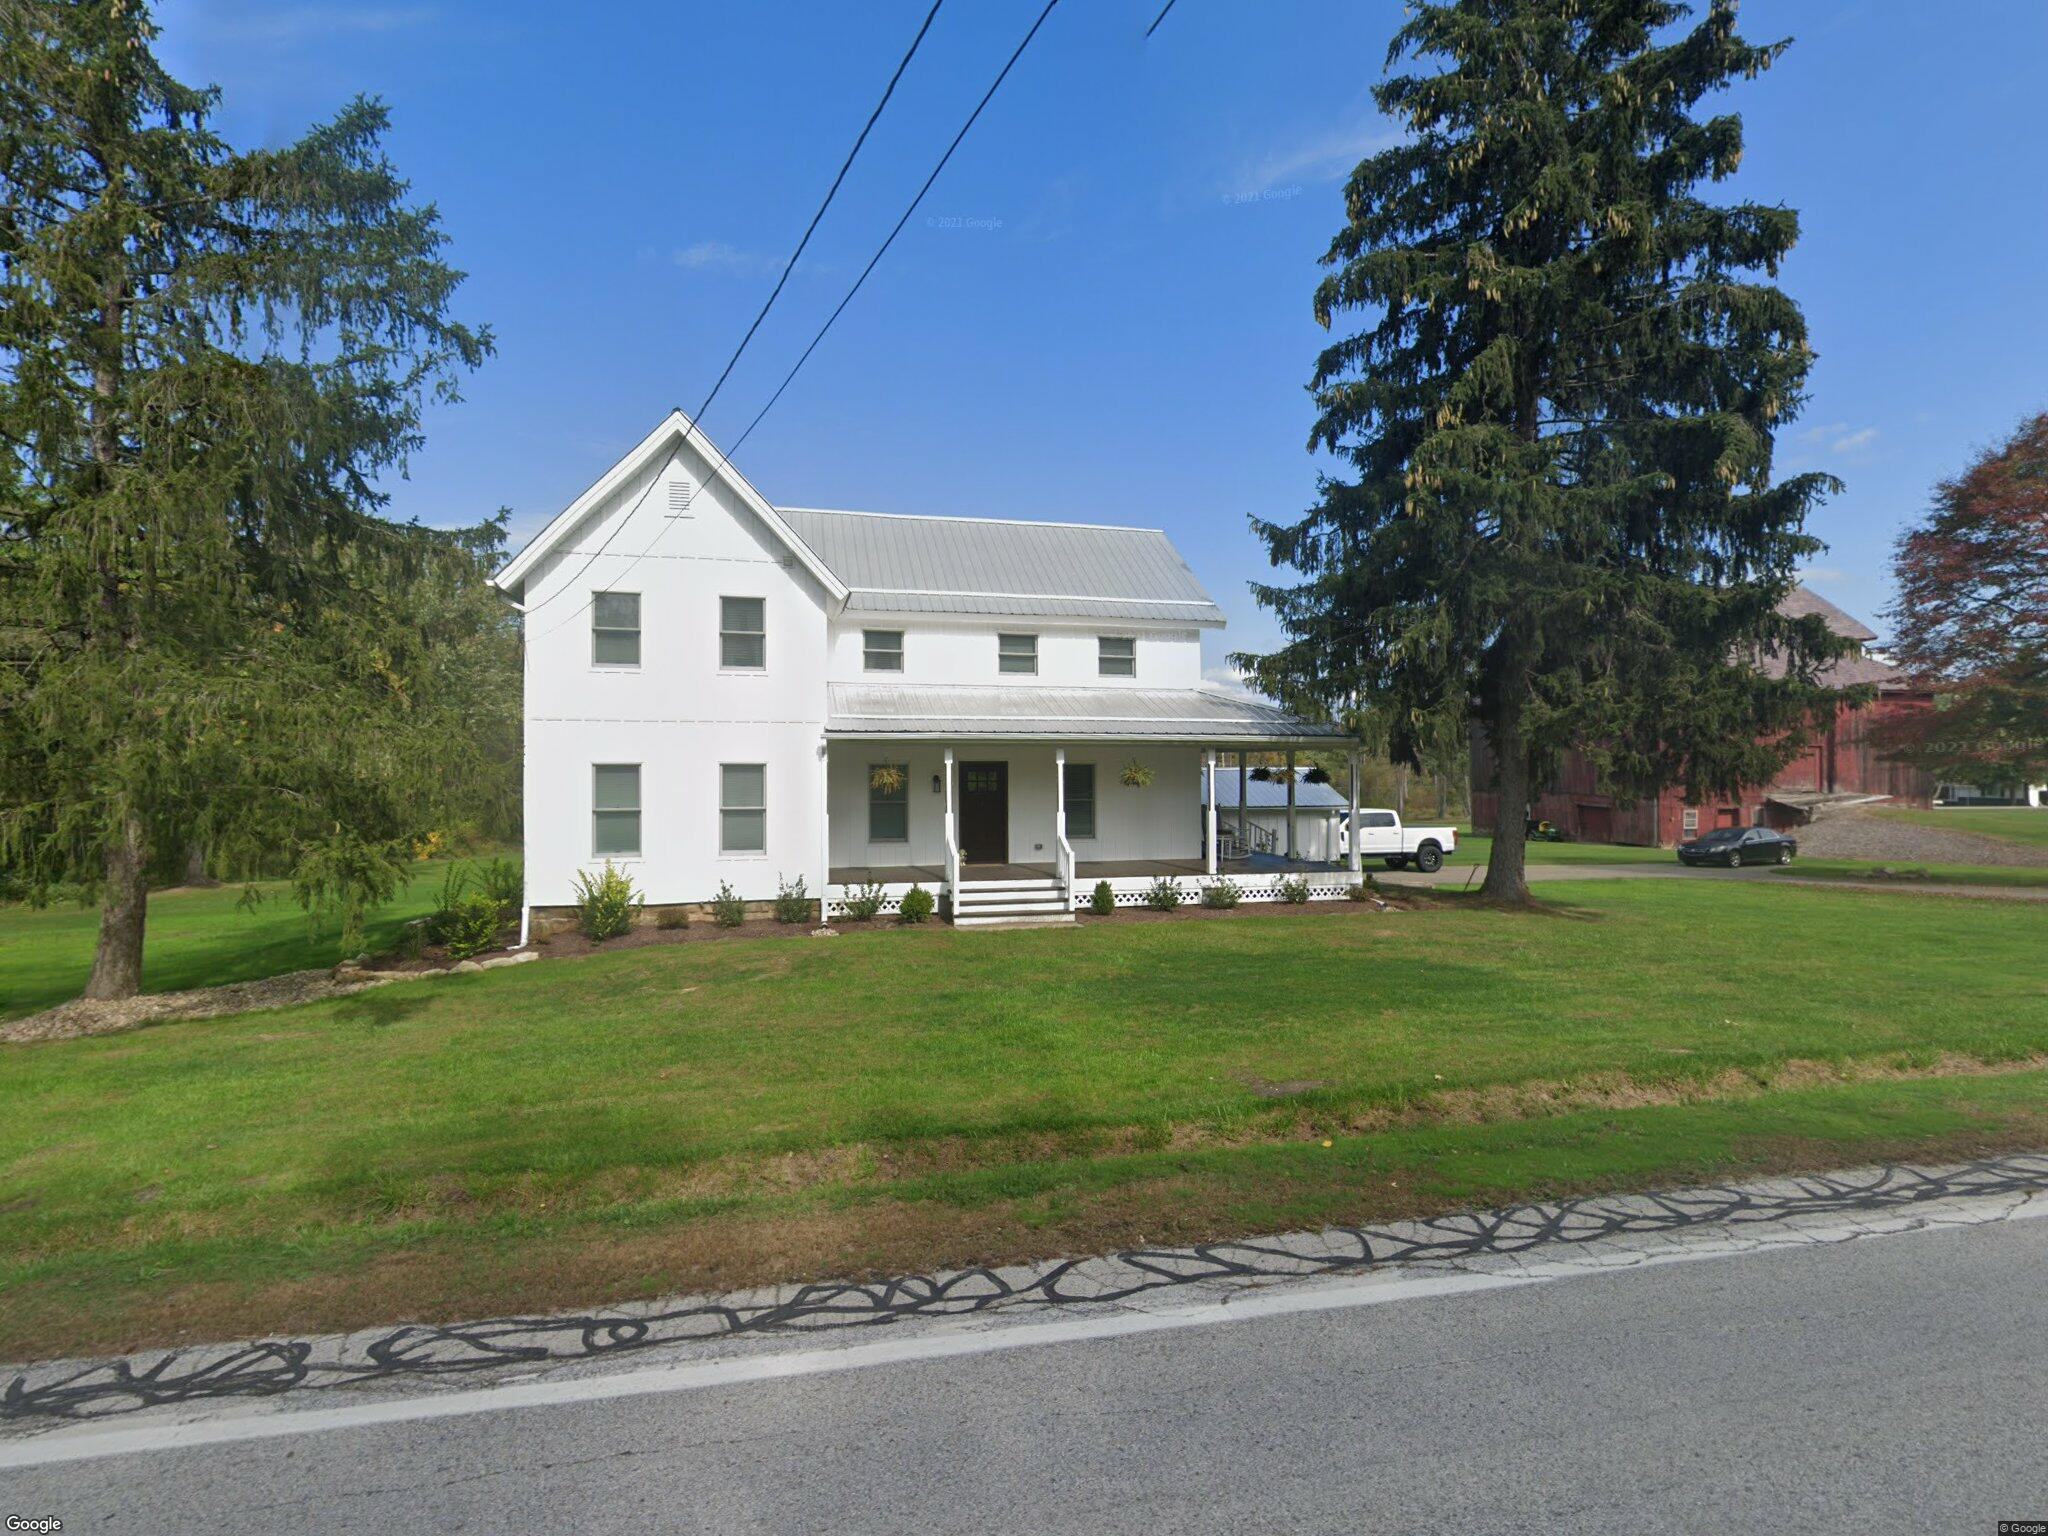 8230 Kinsman Rd, Novelty, OH 44072 | Trulia